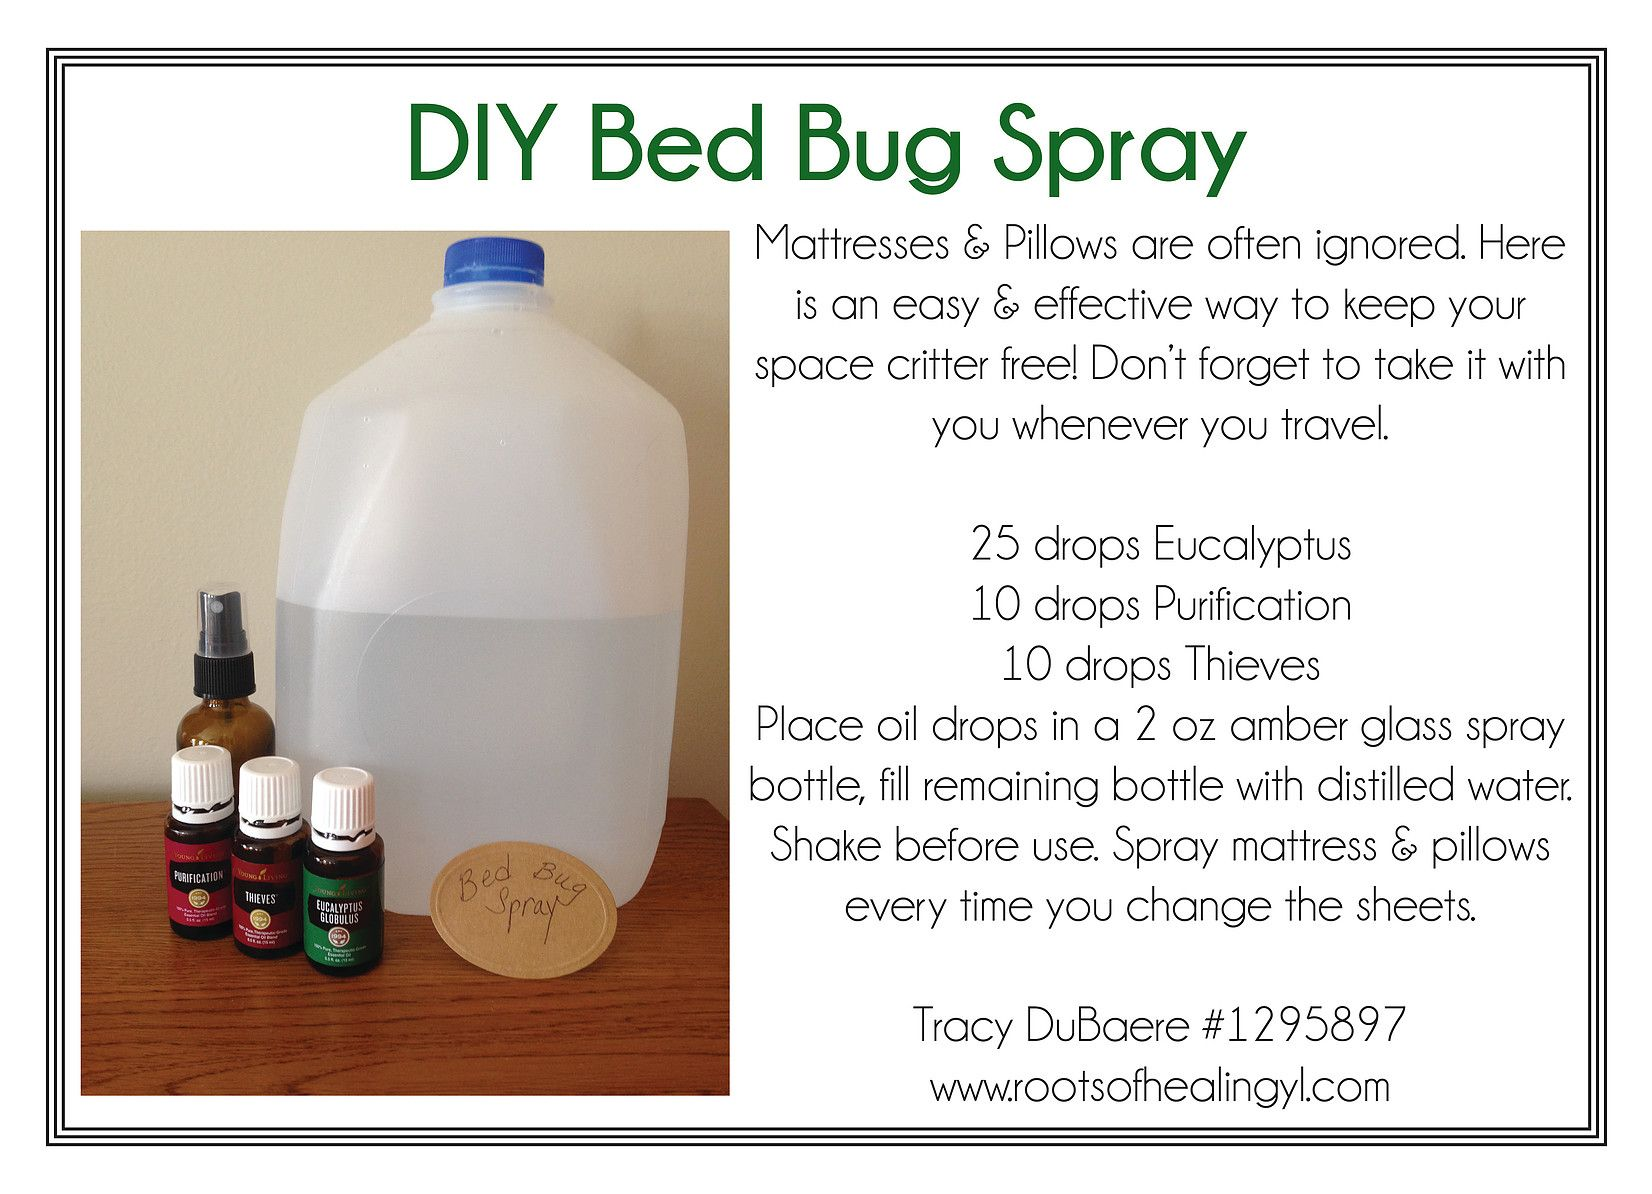 Sprays For Bed Bugs Diy Bed Bug Spray With Essential Oils Oils Bed Bugs Essential